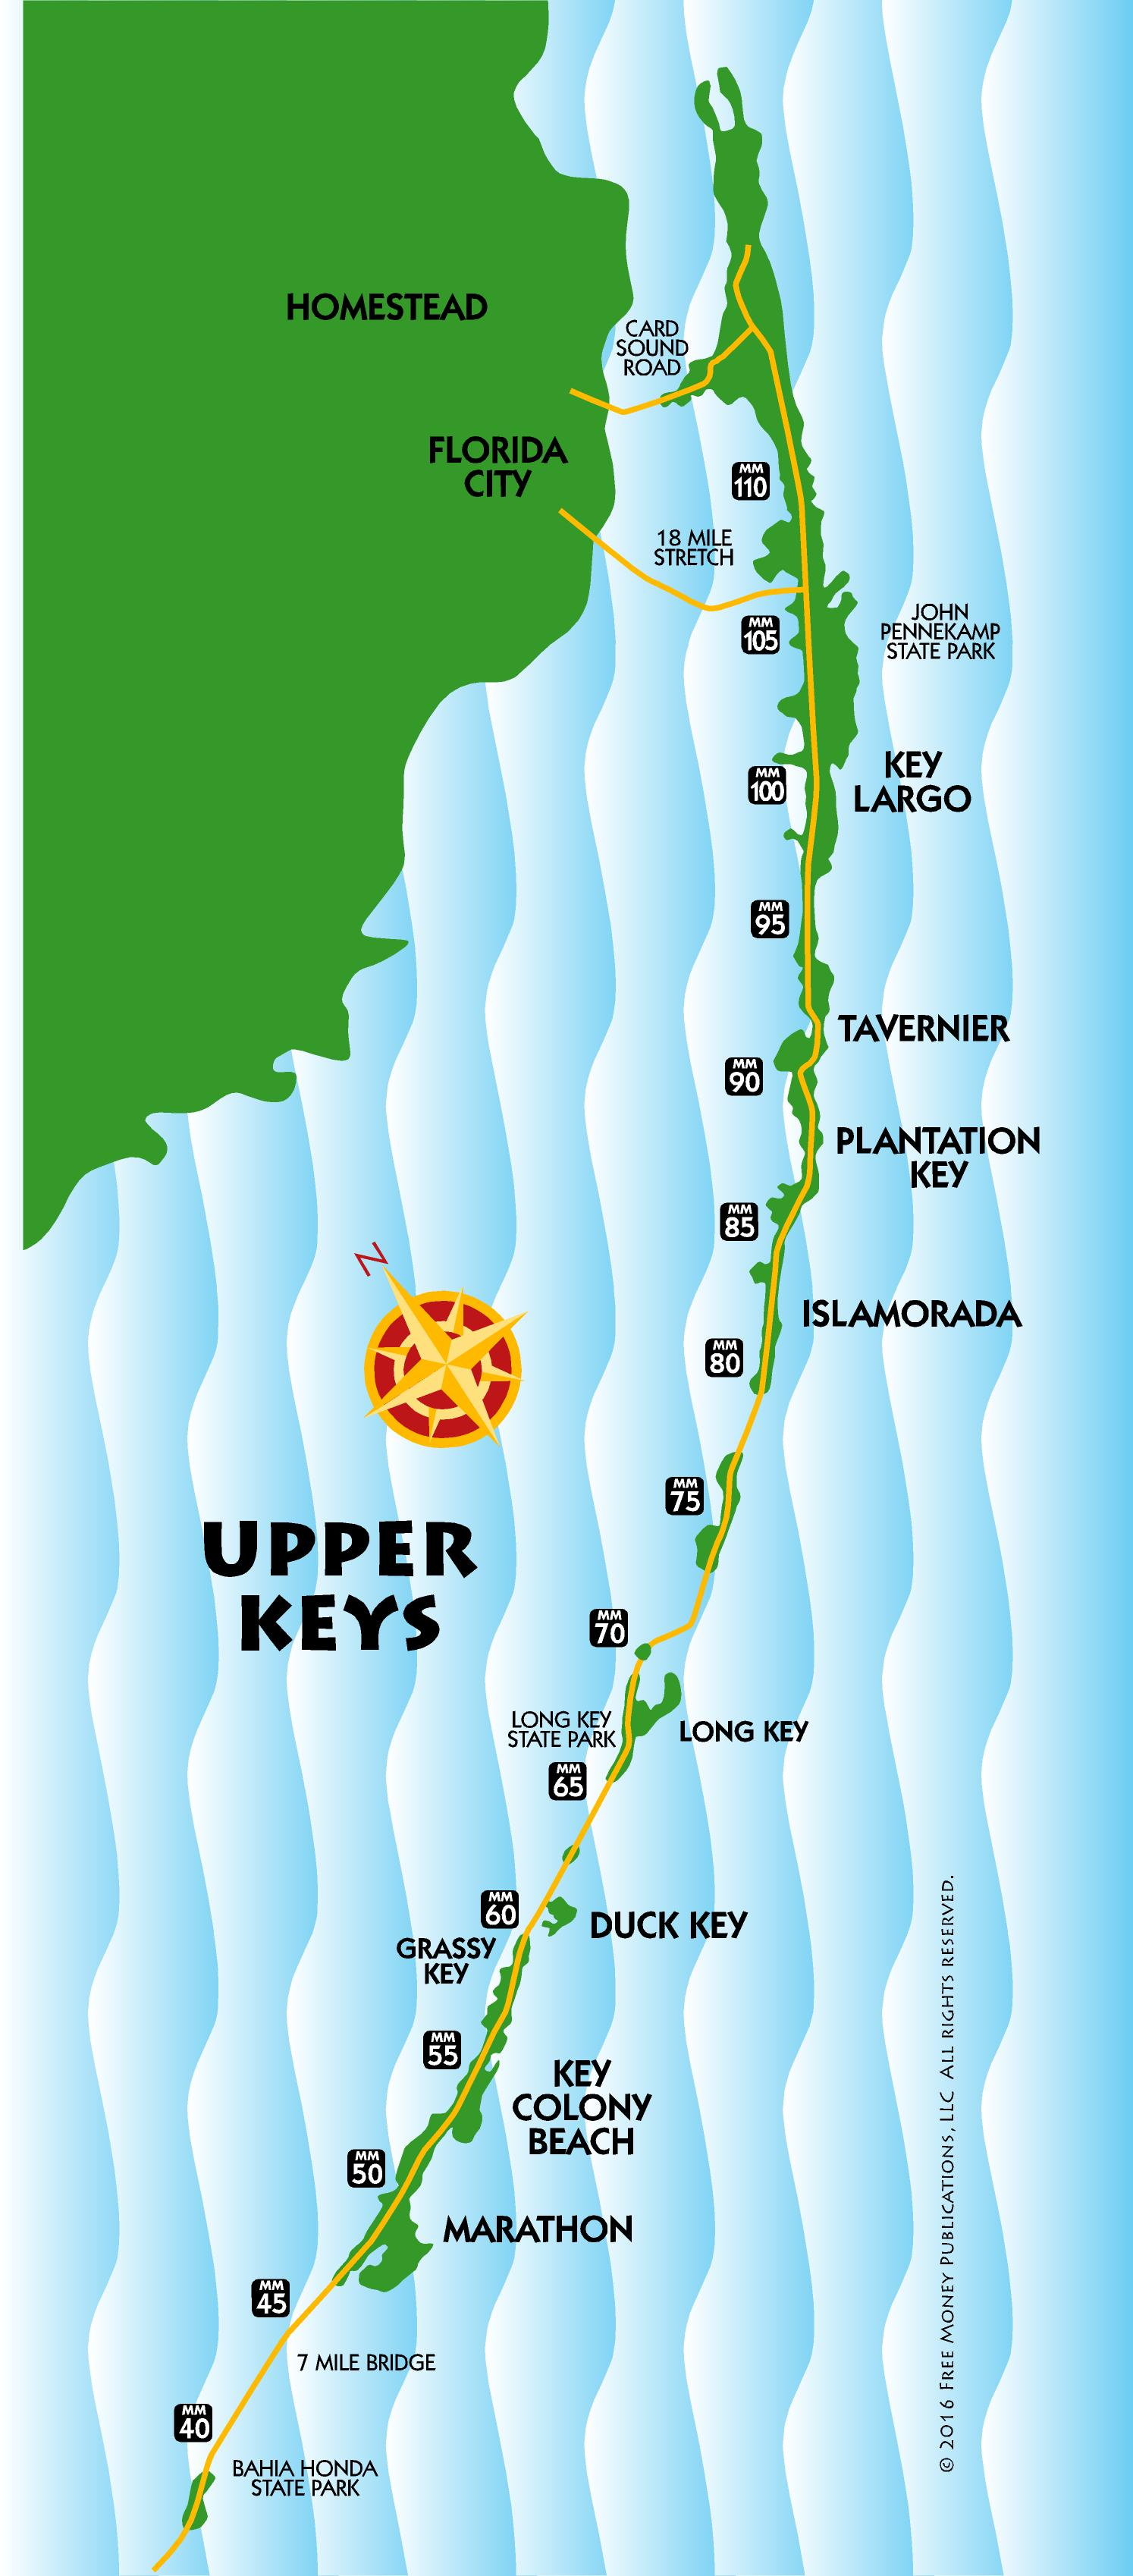 Map Of Florida Keys And Key West.Maps Key West Florida Keys Best Key West Restaurant Menus Key